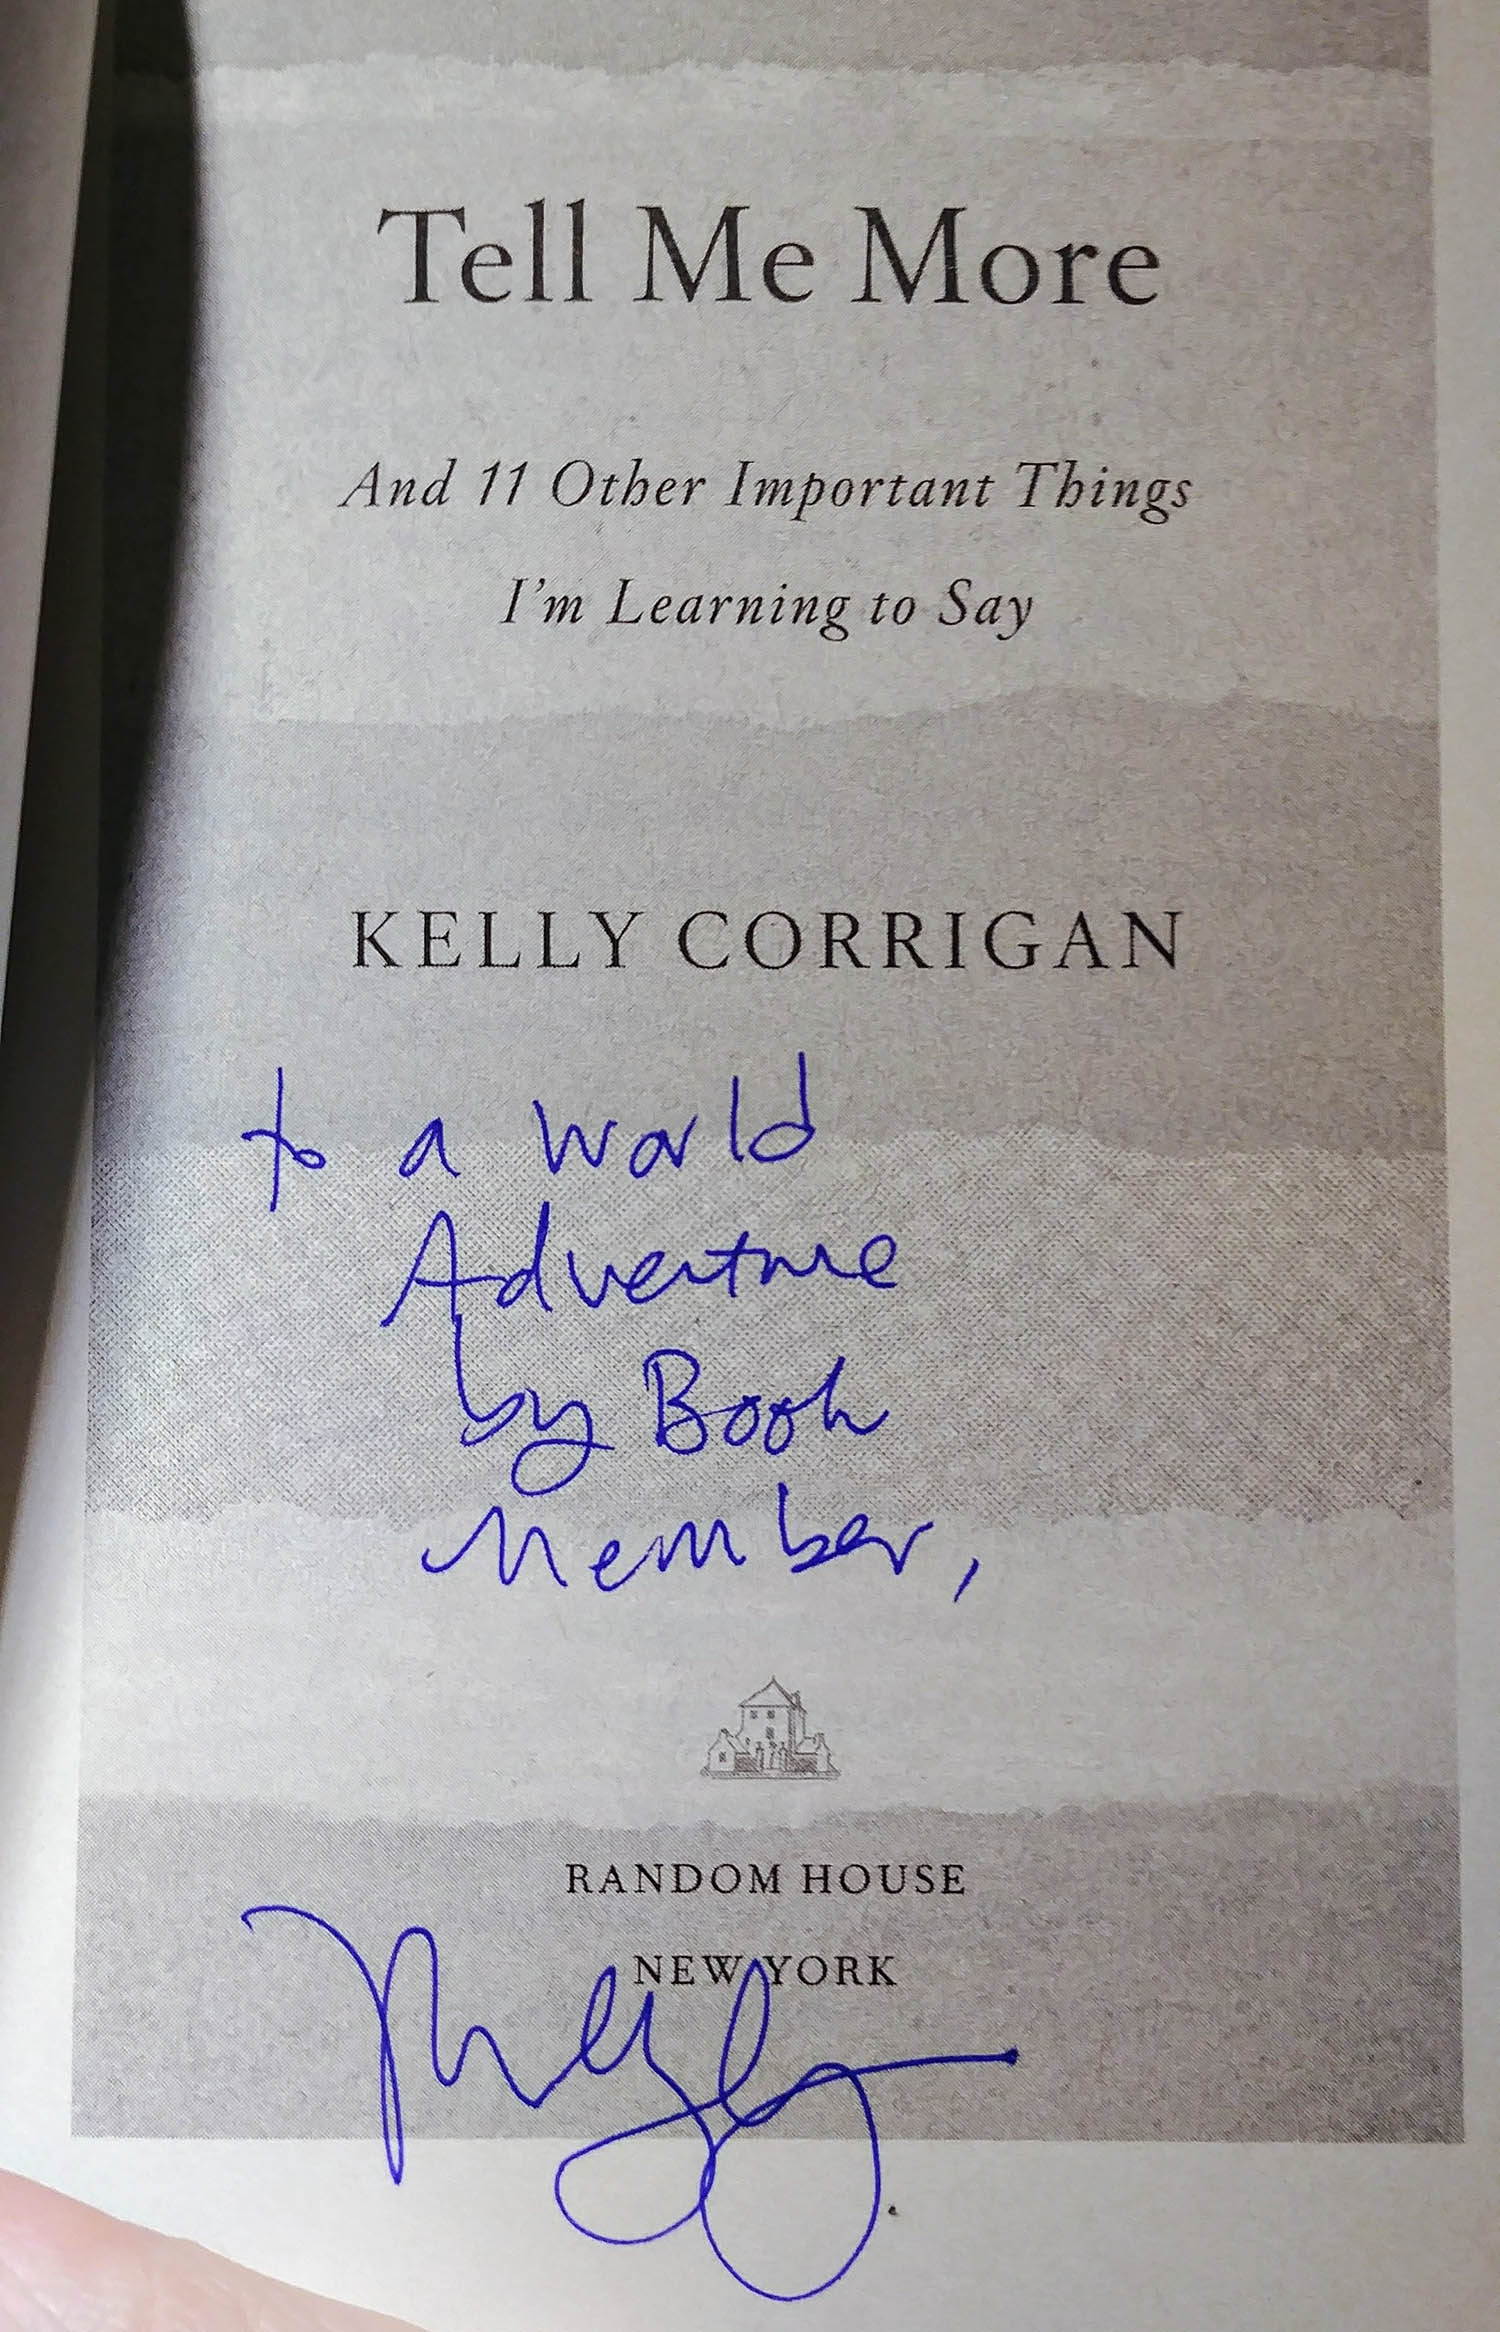 Signed book by author to: A World Adventure by Book club member